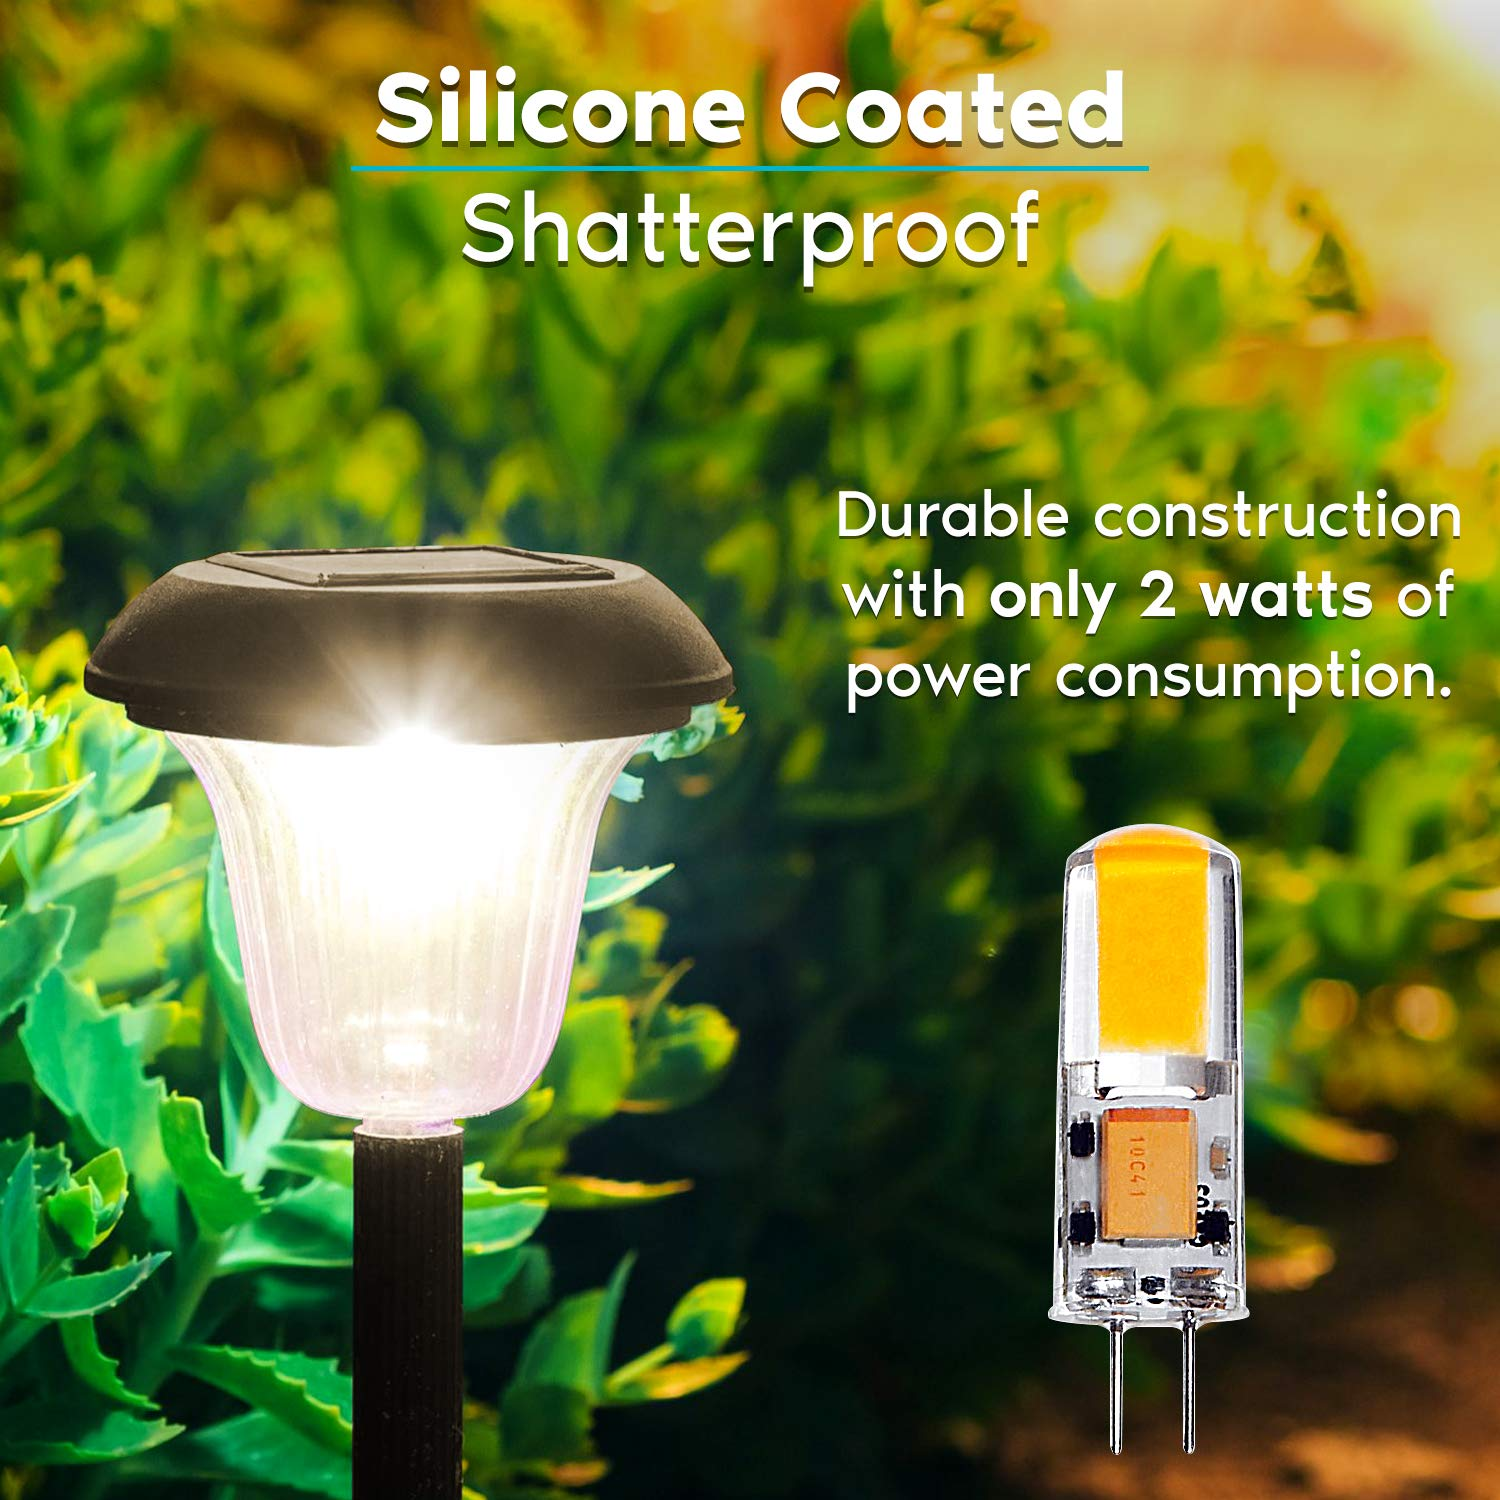 Non-Dimmable 200 Lumens Post Under Cabinet Landscape and Accent Lighting Luxrite G4 LED Bulb 2700K Warm White 20W Halogen T3 Equivalent 10-Pack 12V AC//DC Garden Silicone Shatterproof